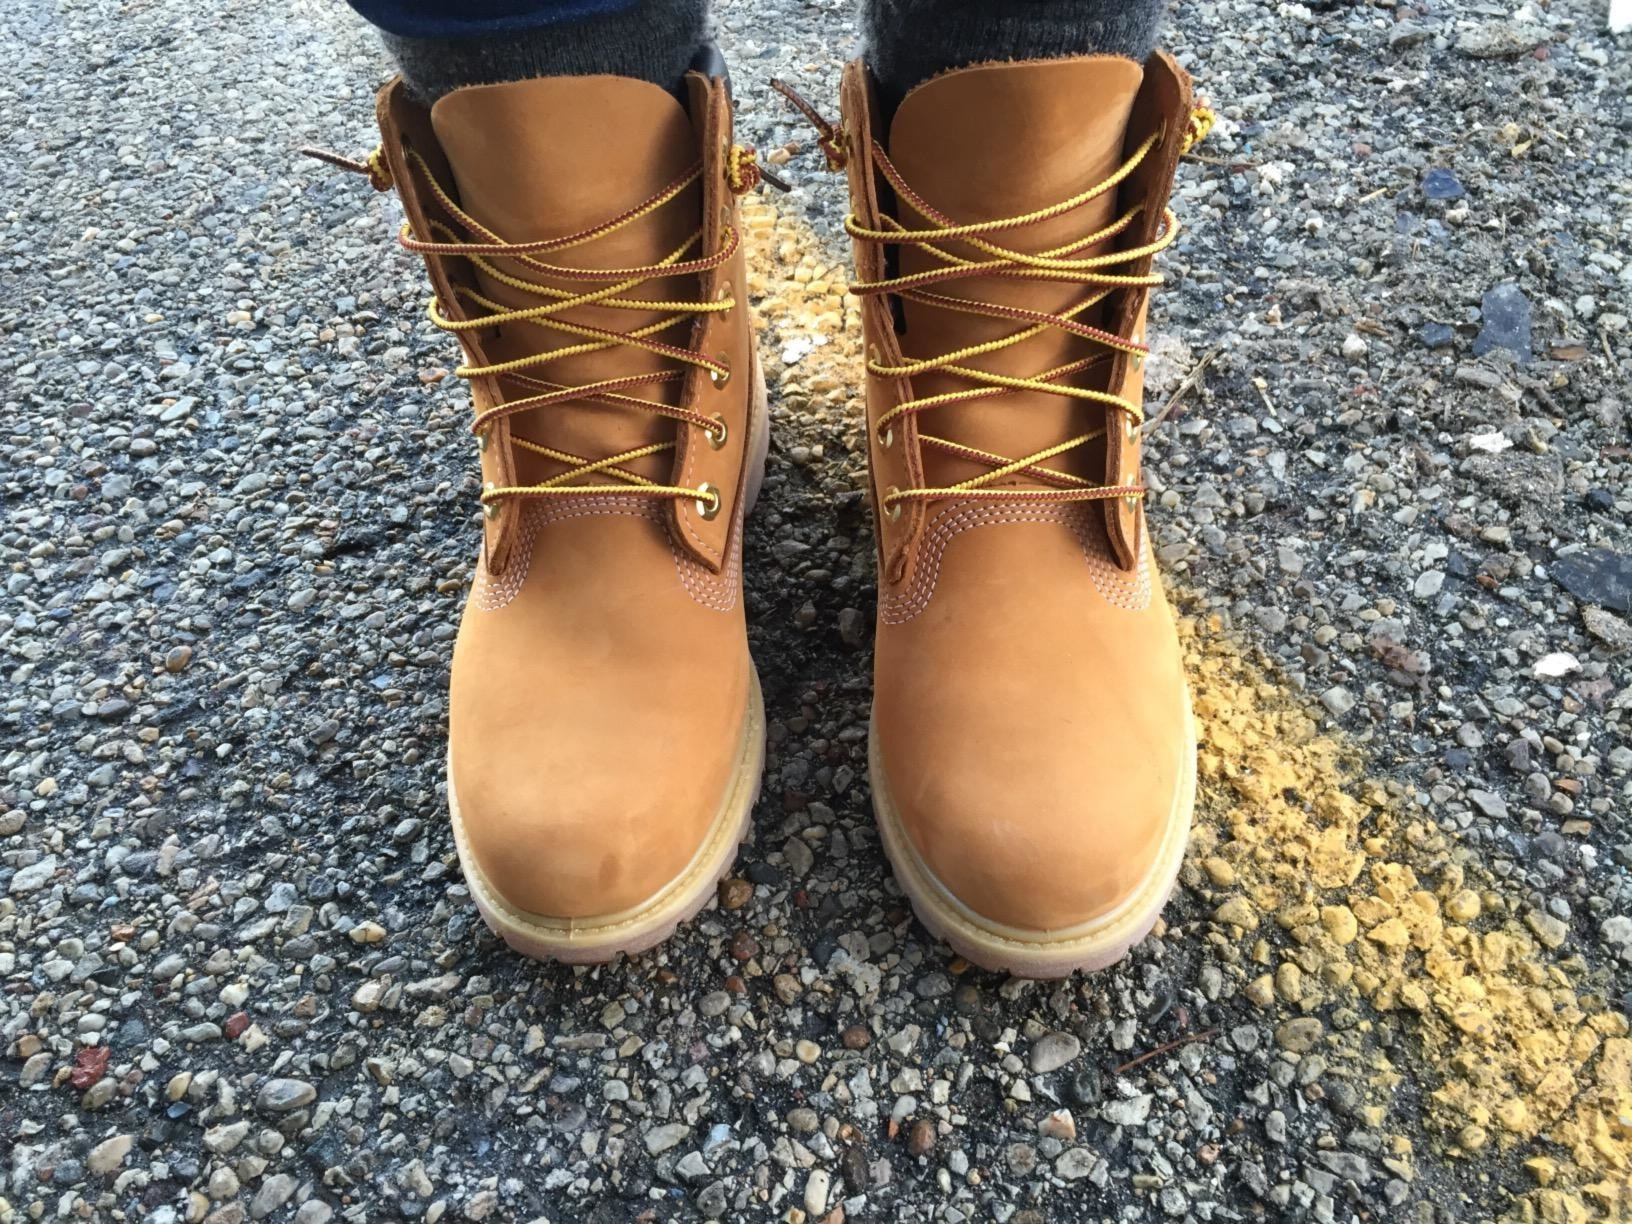 reviewer in the taupe lace-up high-top leather boots with lug soles and woven laces